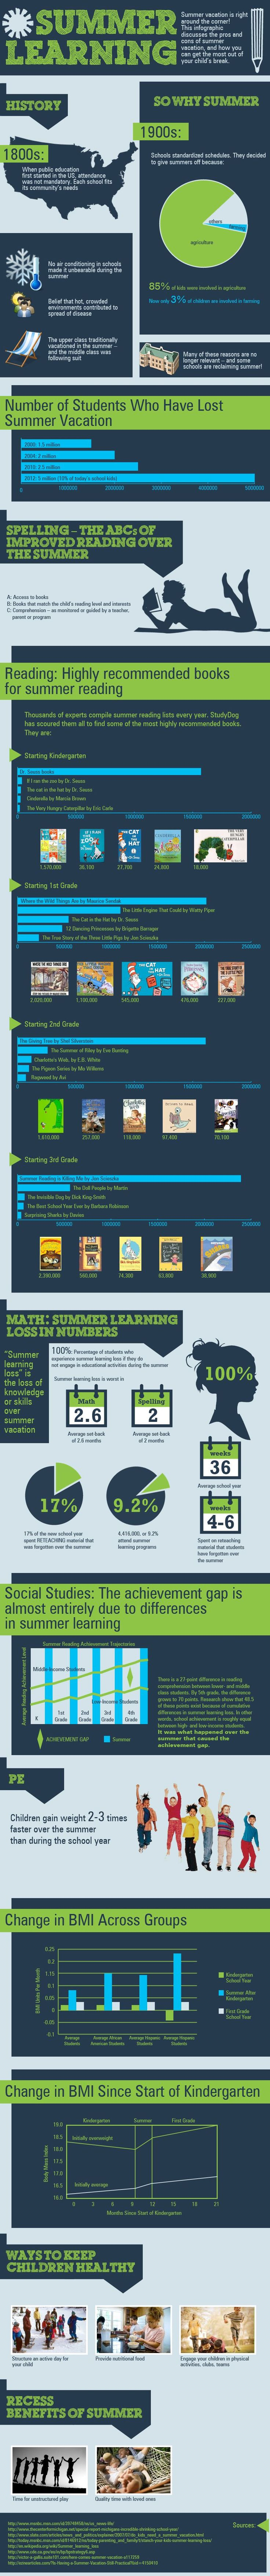 best education infographics images info graphics  effects of summer vacation on learning infographic